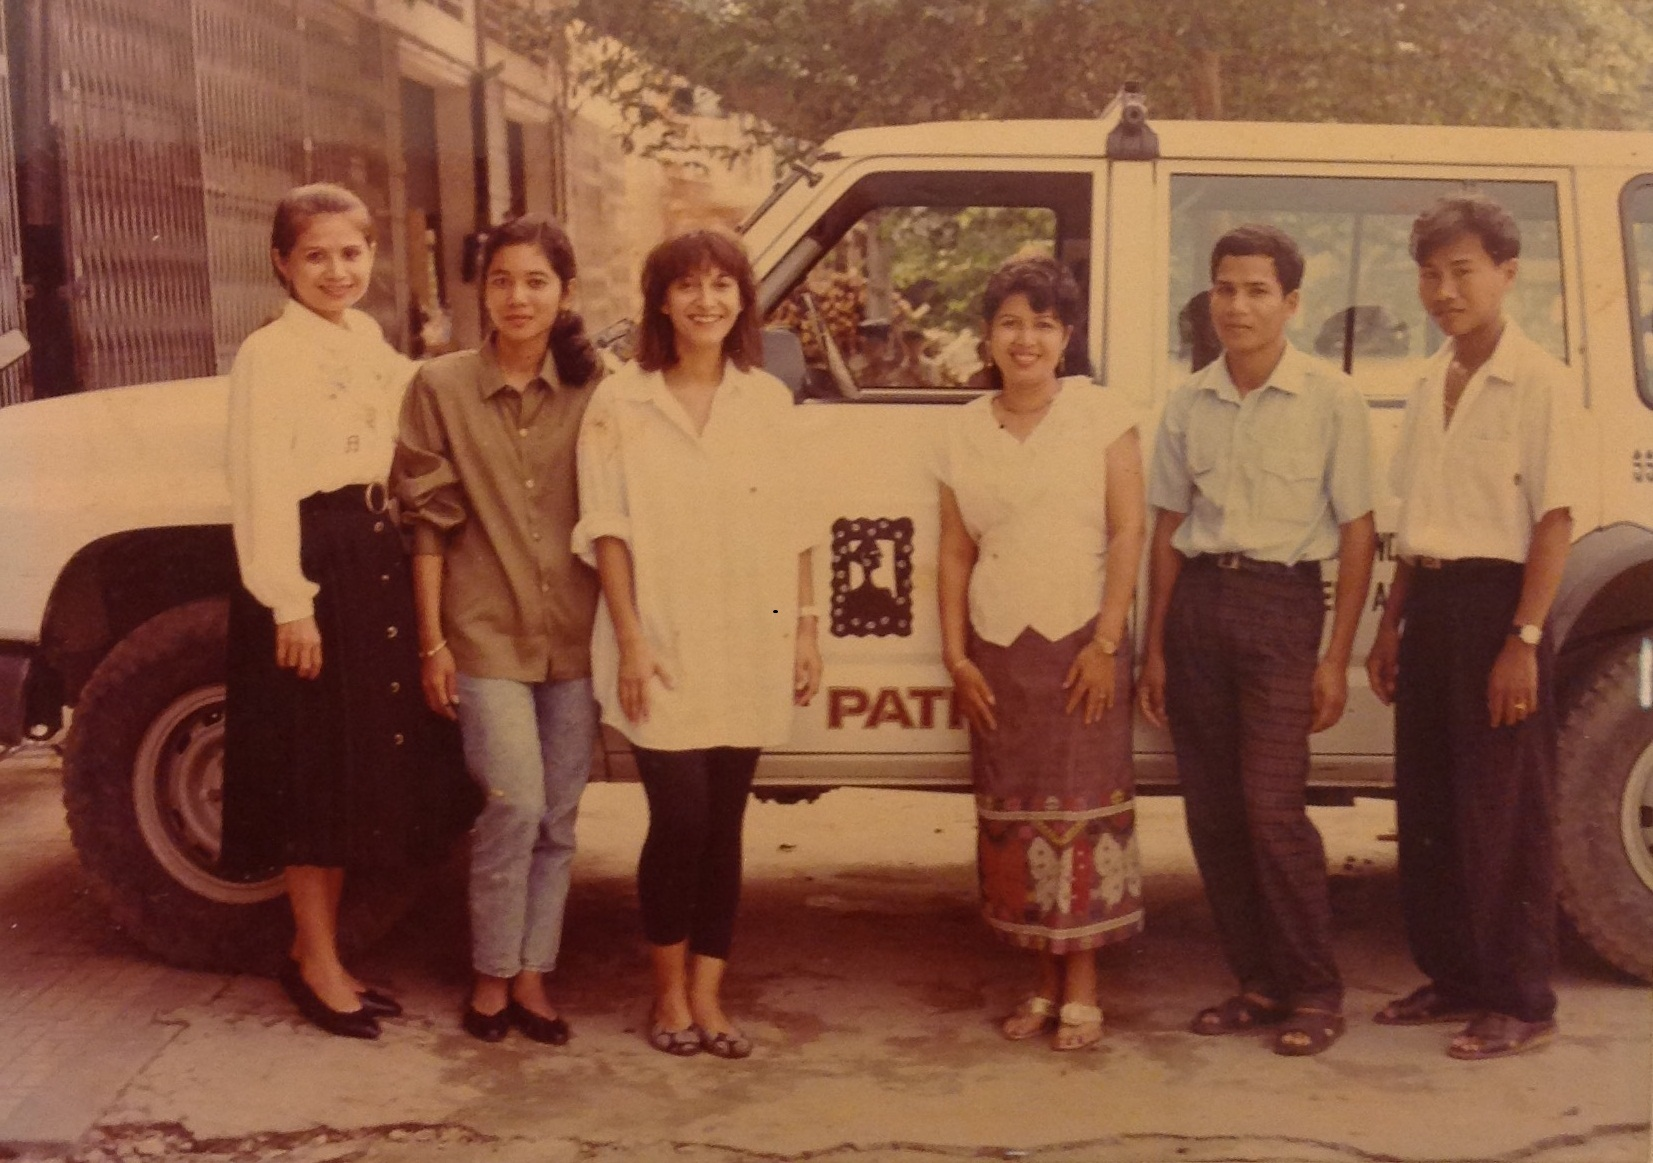 IWDA Cambodia staff in the 1990s